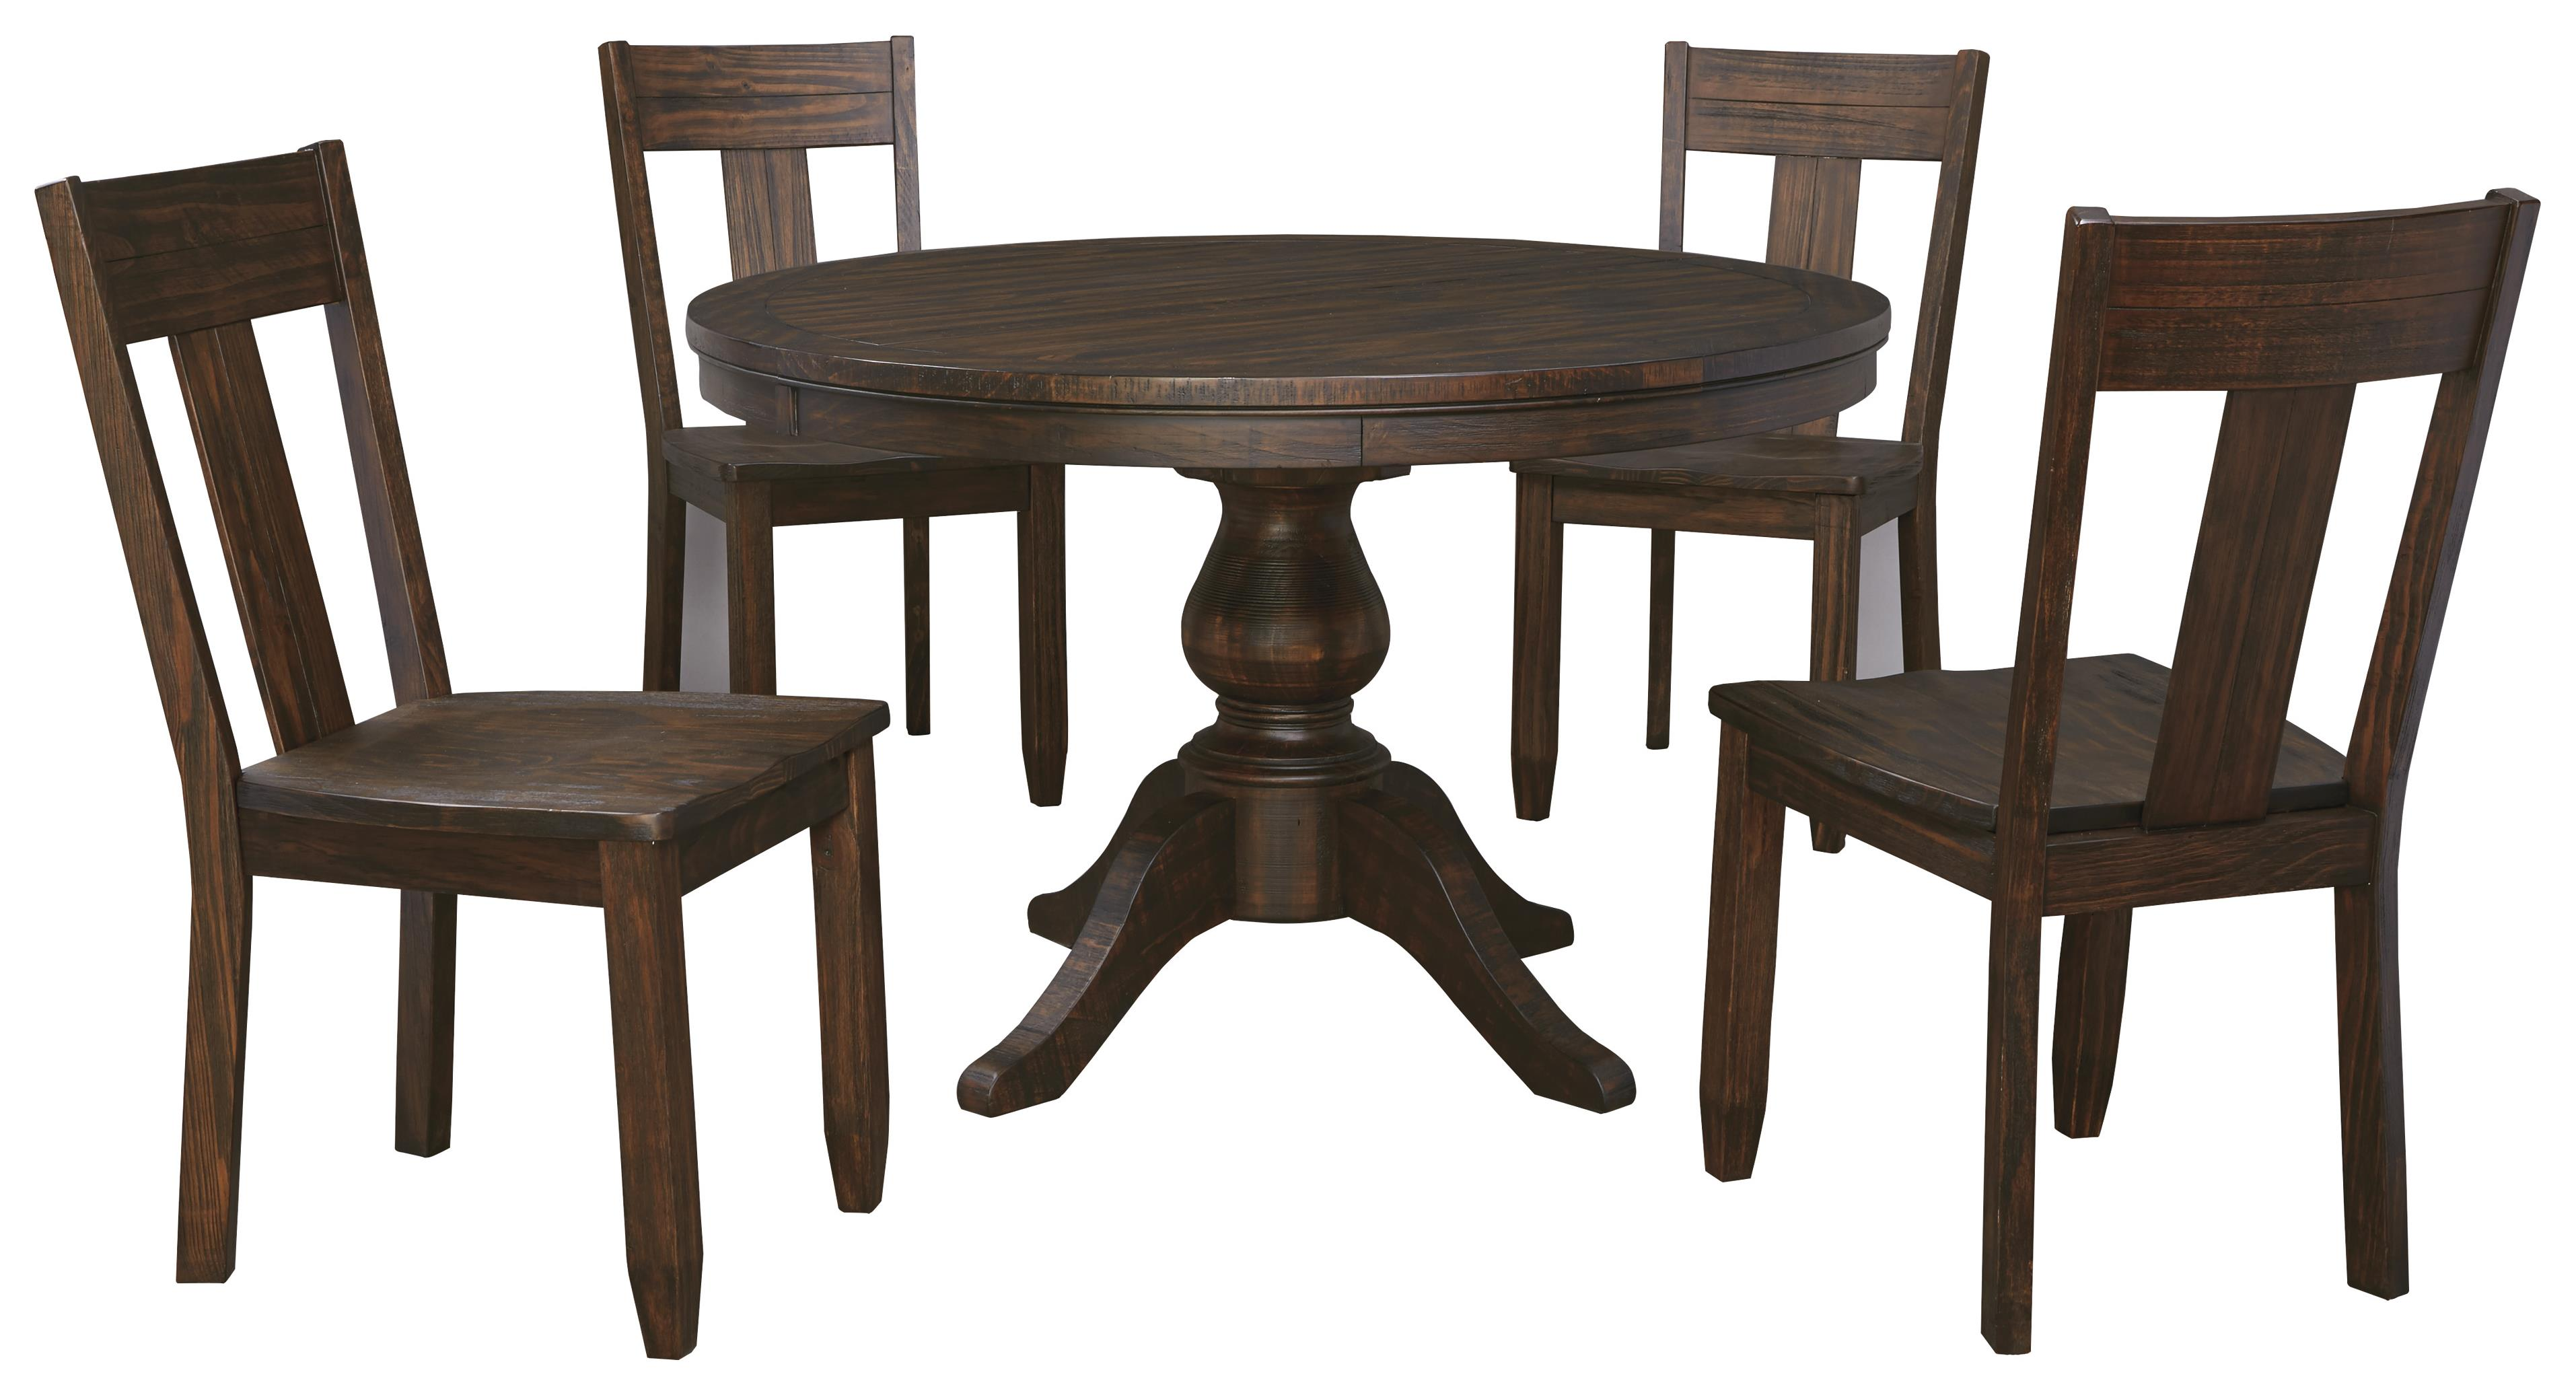 Round Dining Table And Chairs 5 Piece Round Dining Table Set With Wood Seat Side Chairs